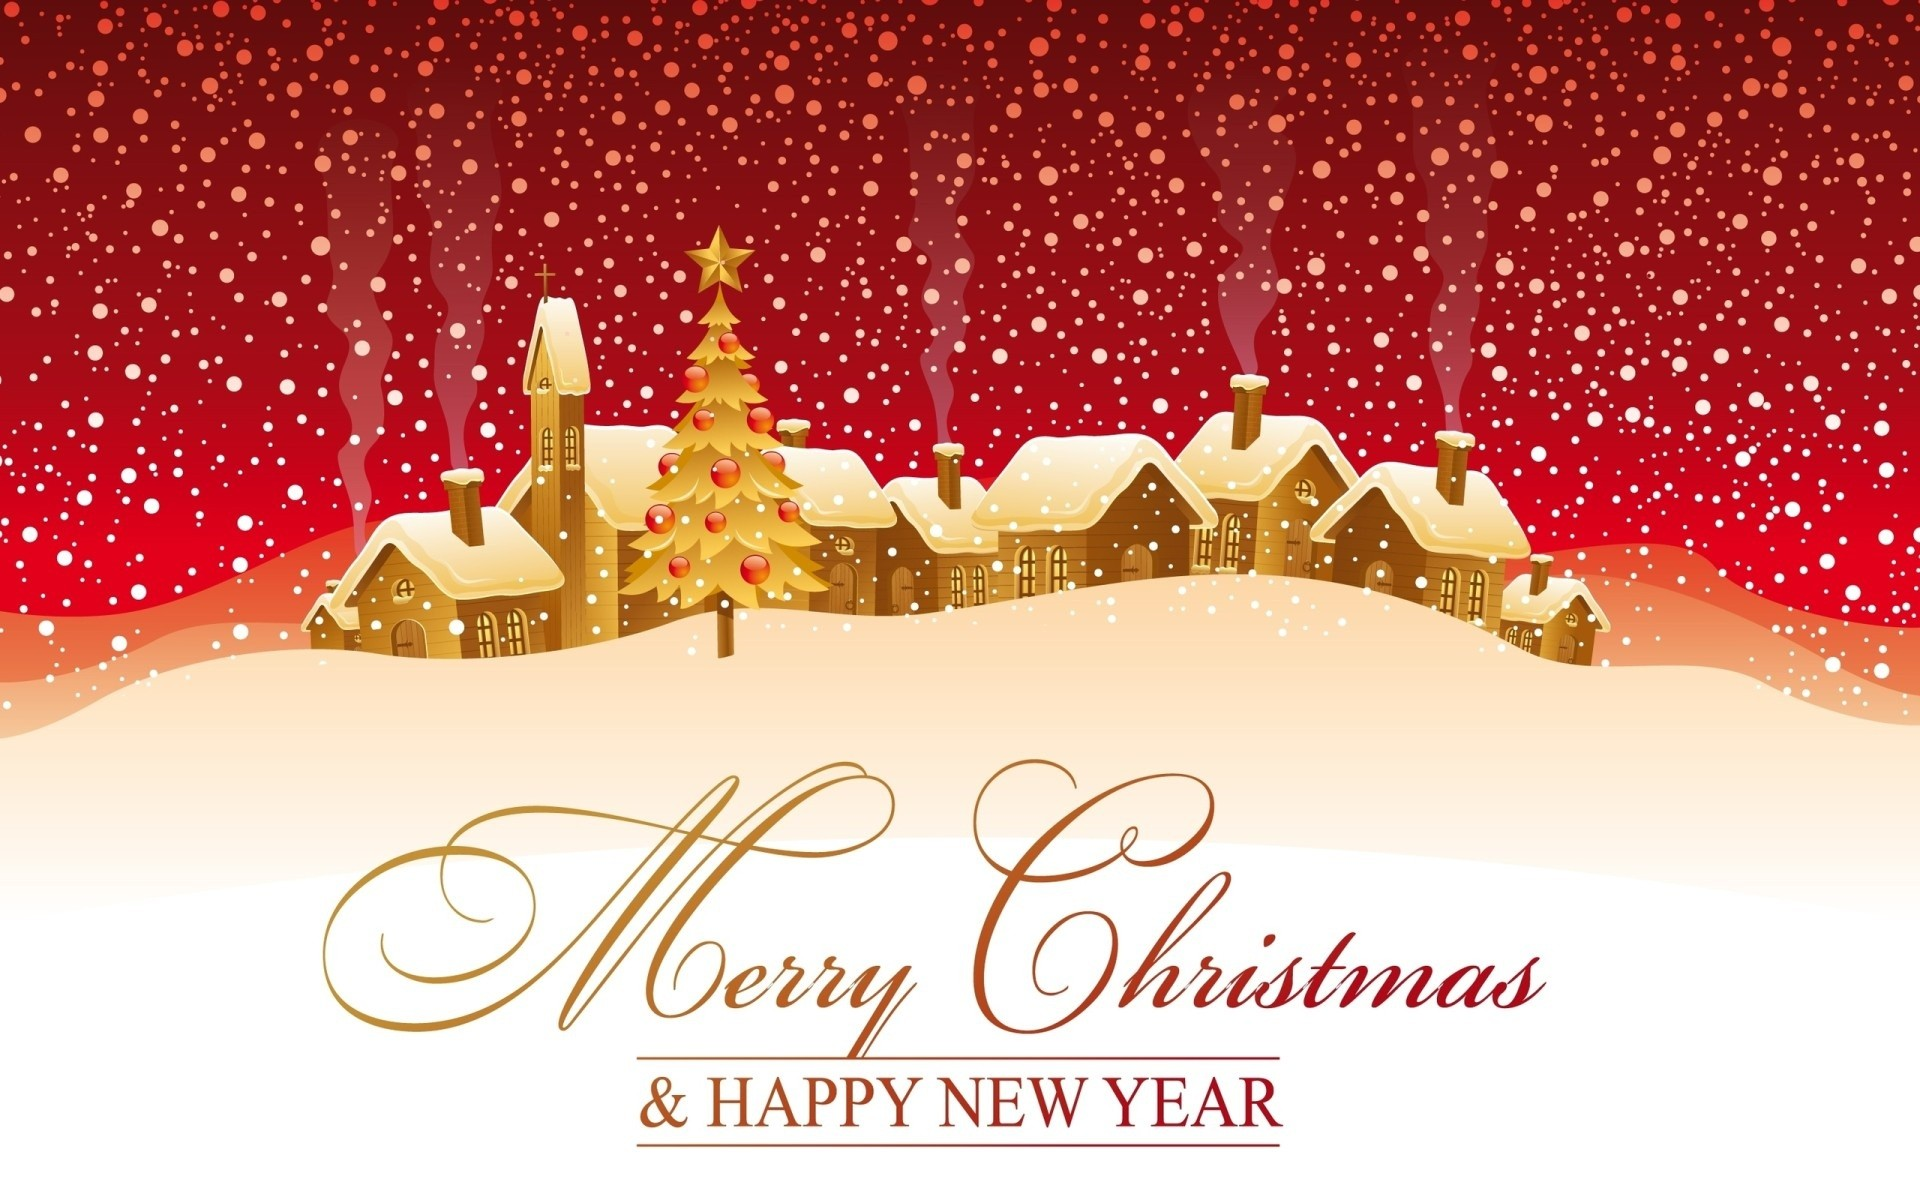 Gorgeous Merry Christmas Greetings Aurora Apartments Nin